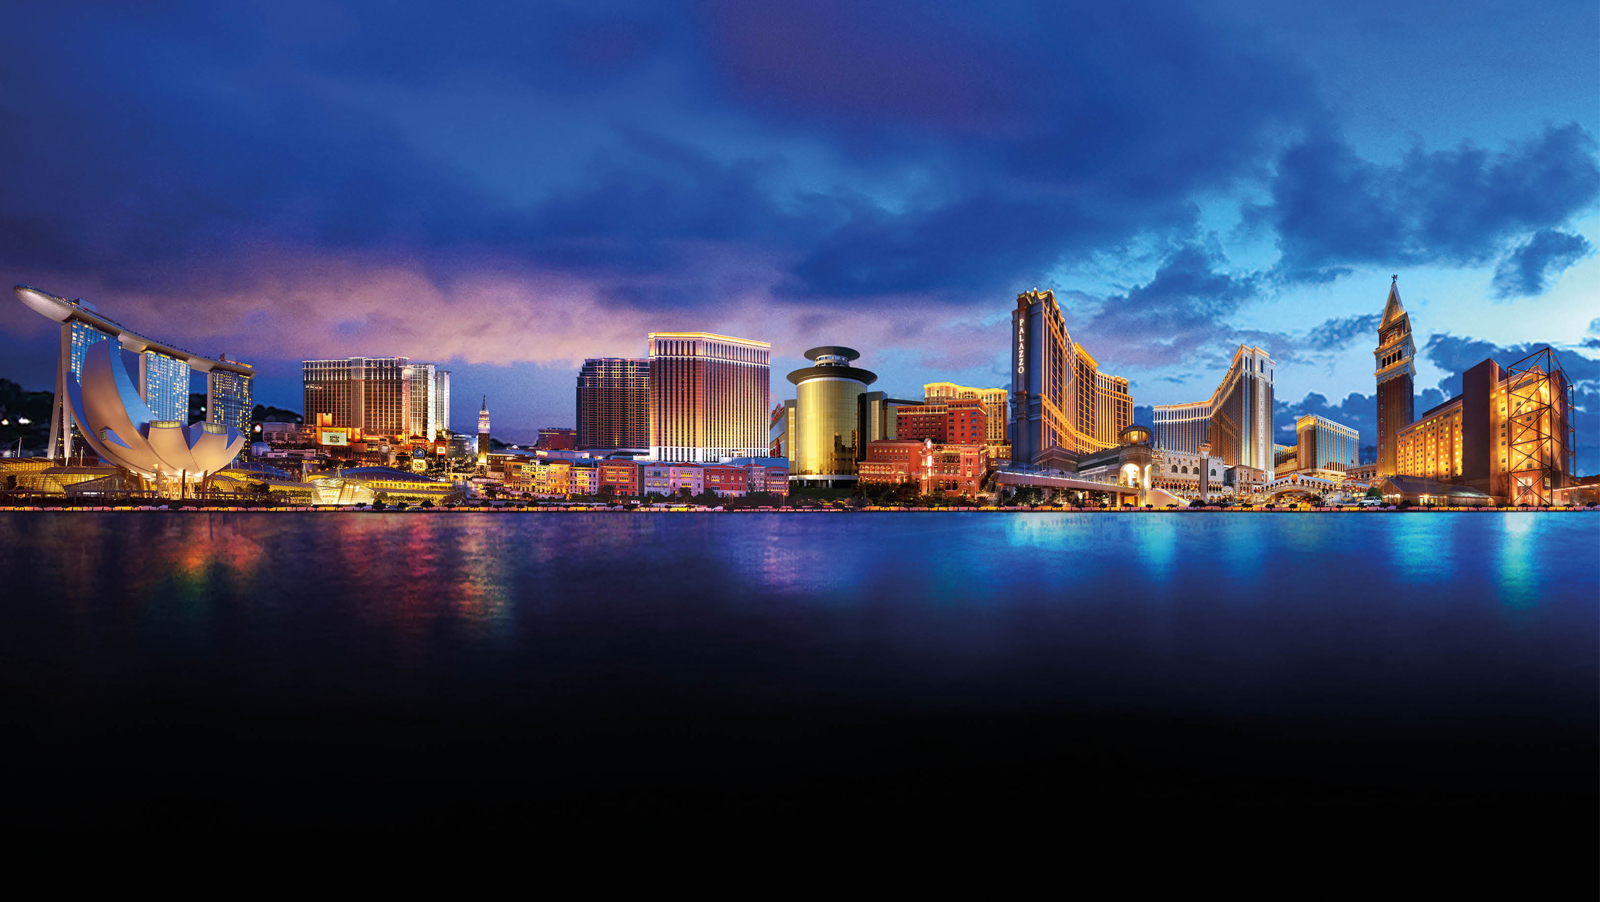 A bear market investment strategy using Las Vegas Sands